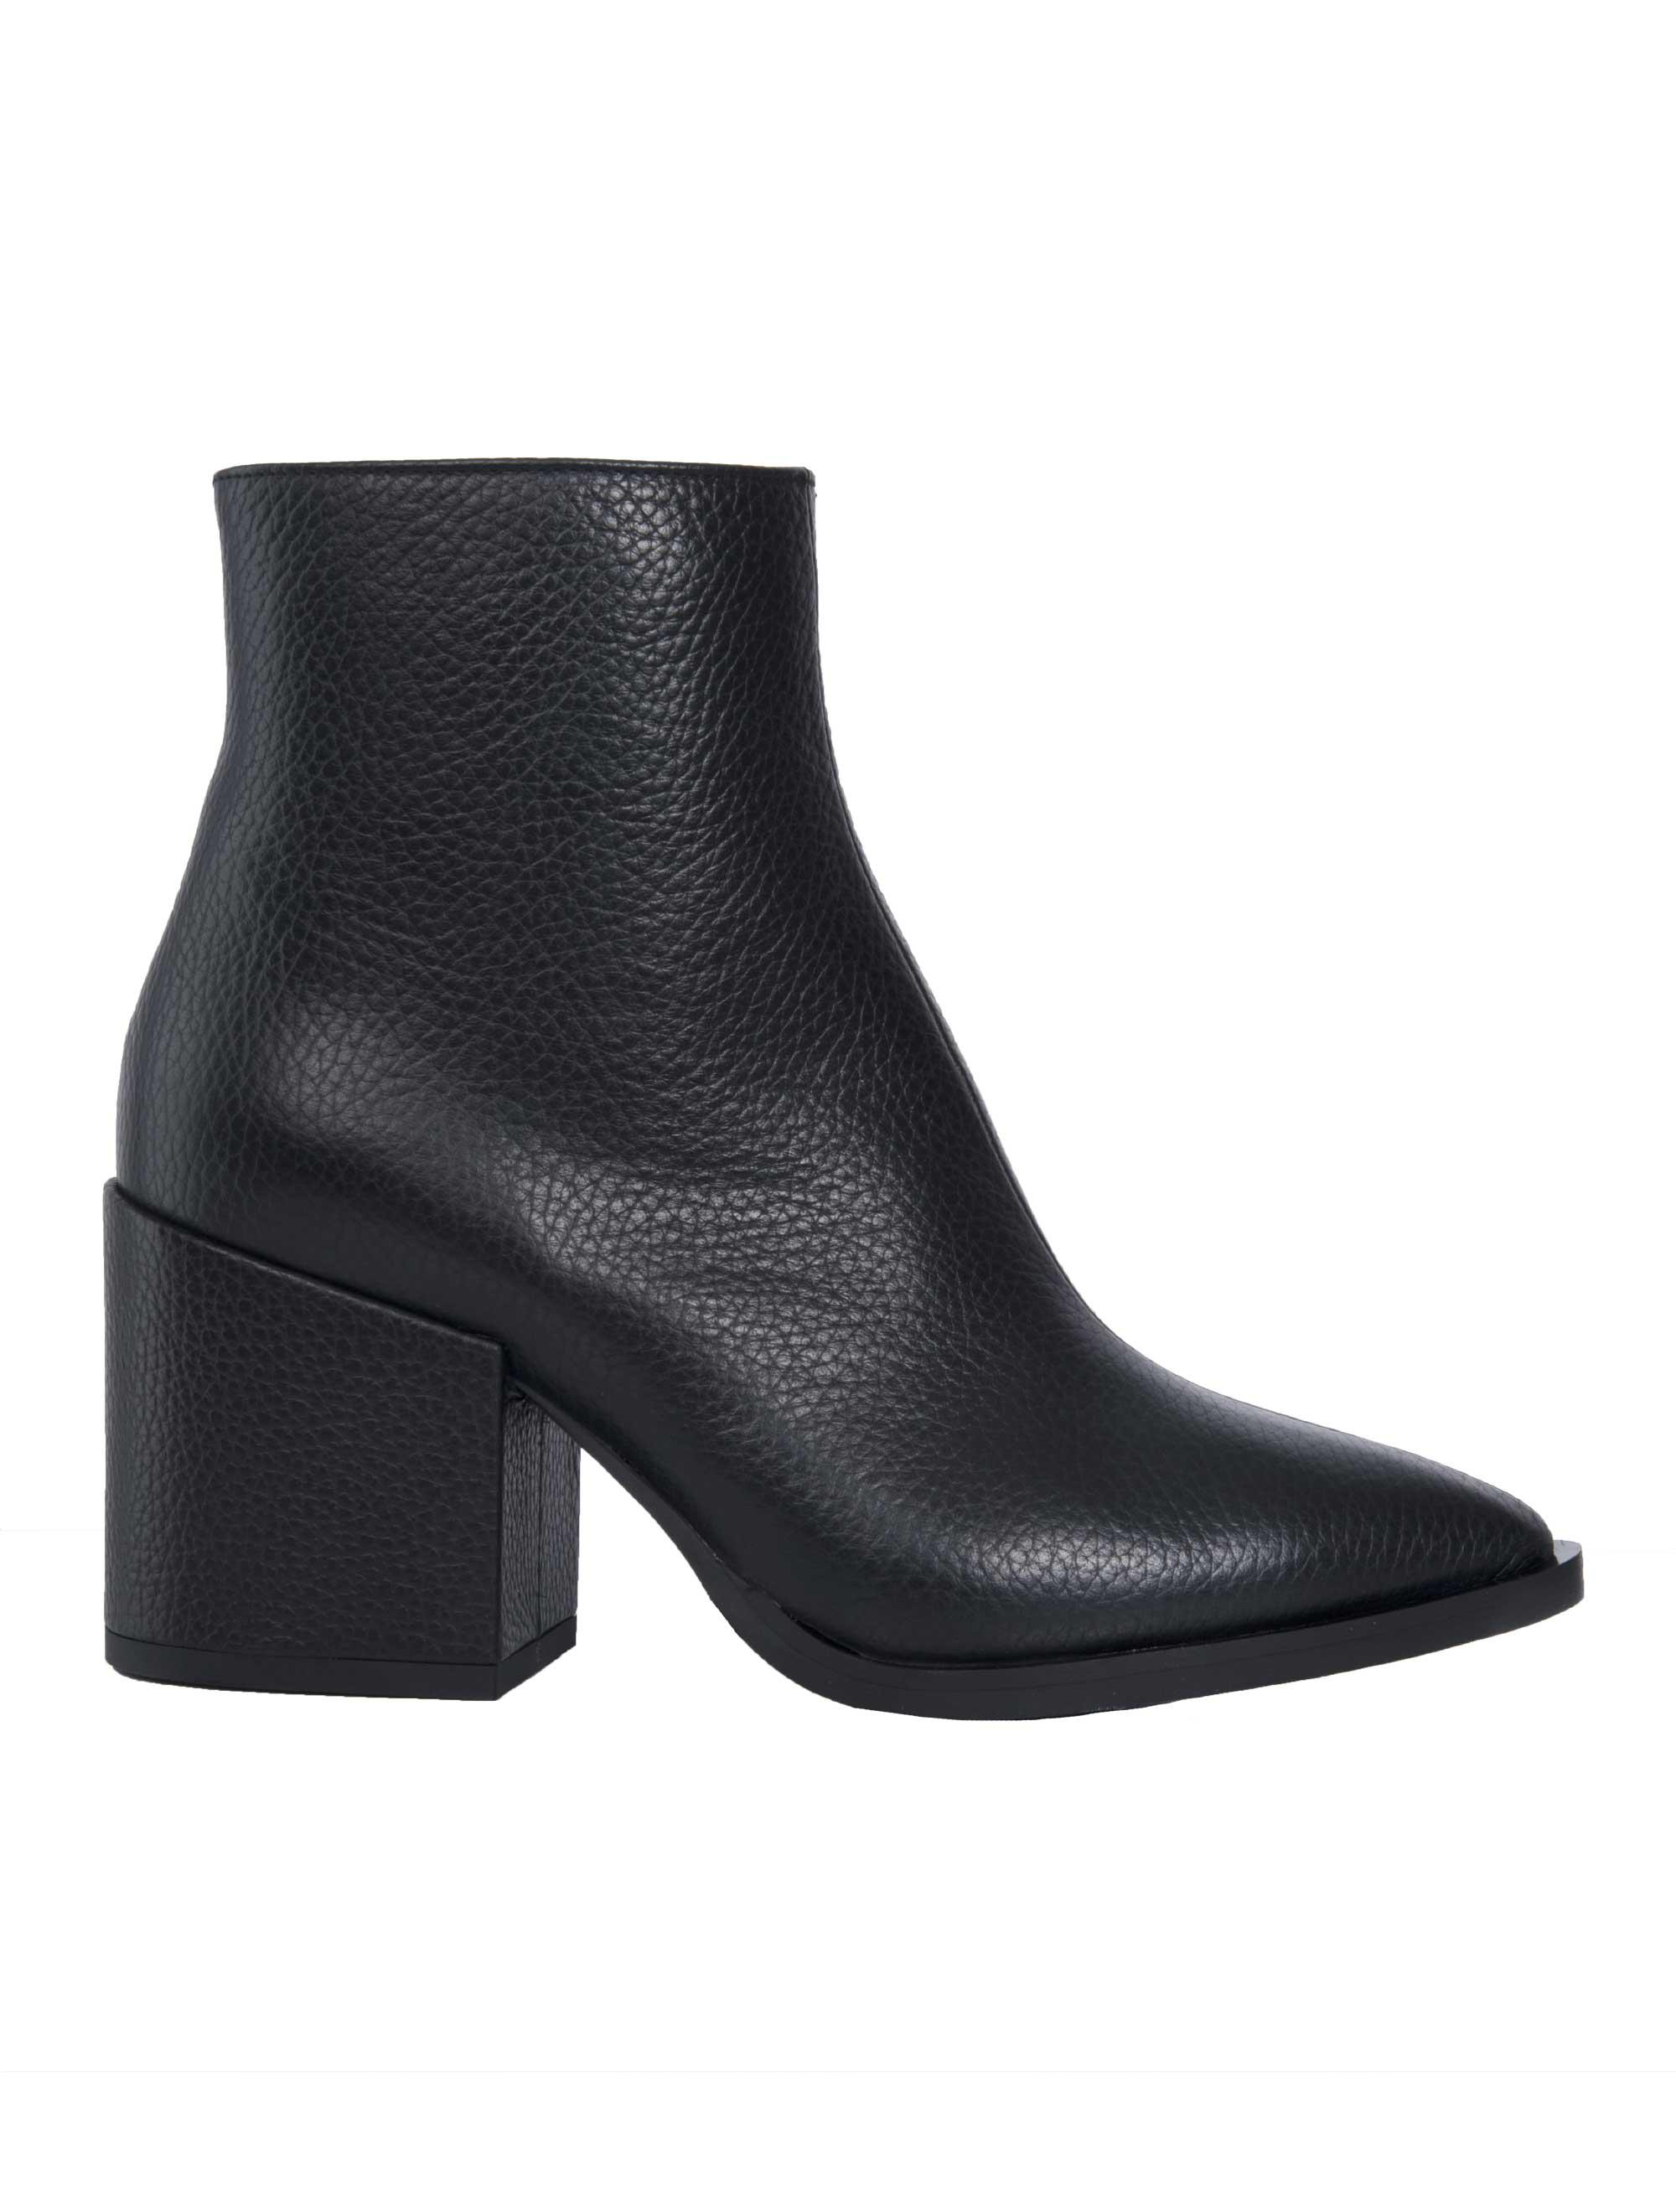 f09b9e3a47b6 Lyst - Mcq Alexander Mcqueen Pebbled Pointed Ankle Boots in Black